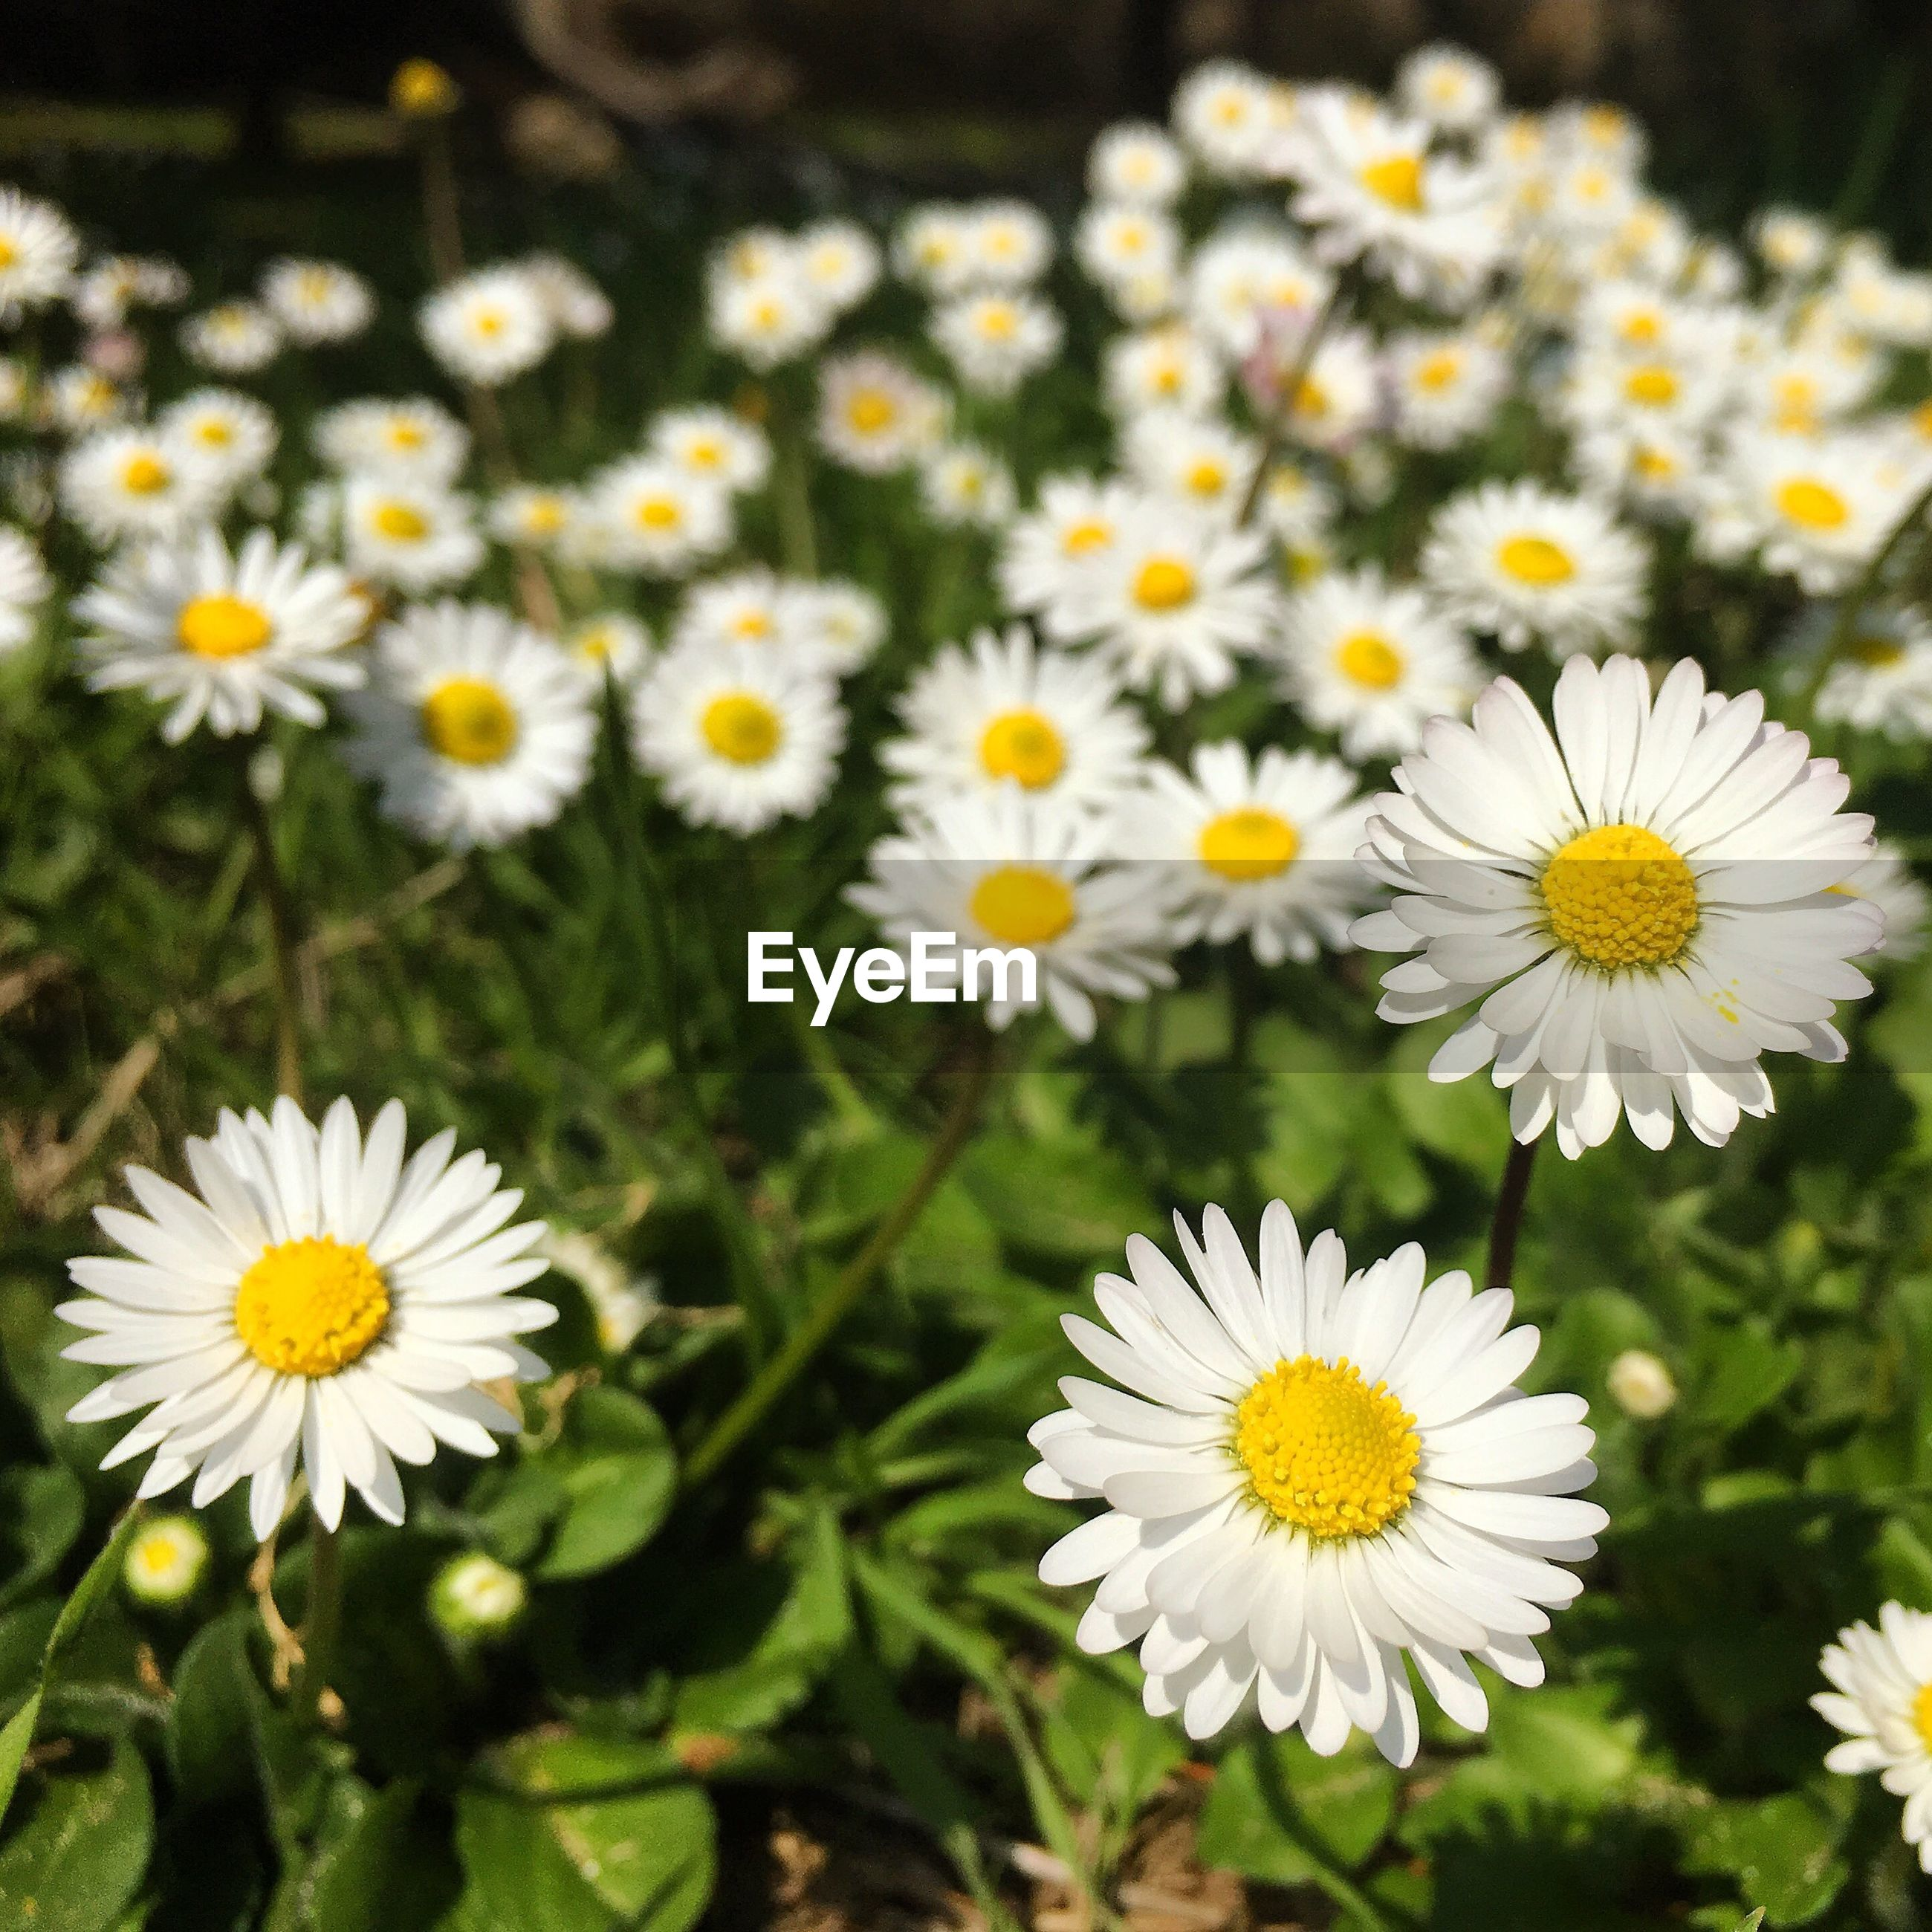 CLOSE-UP OF DAISY FLOWERS BLOOMING OUTDOORS